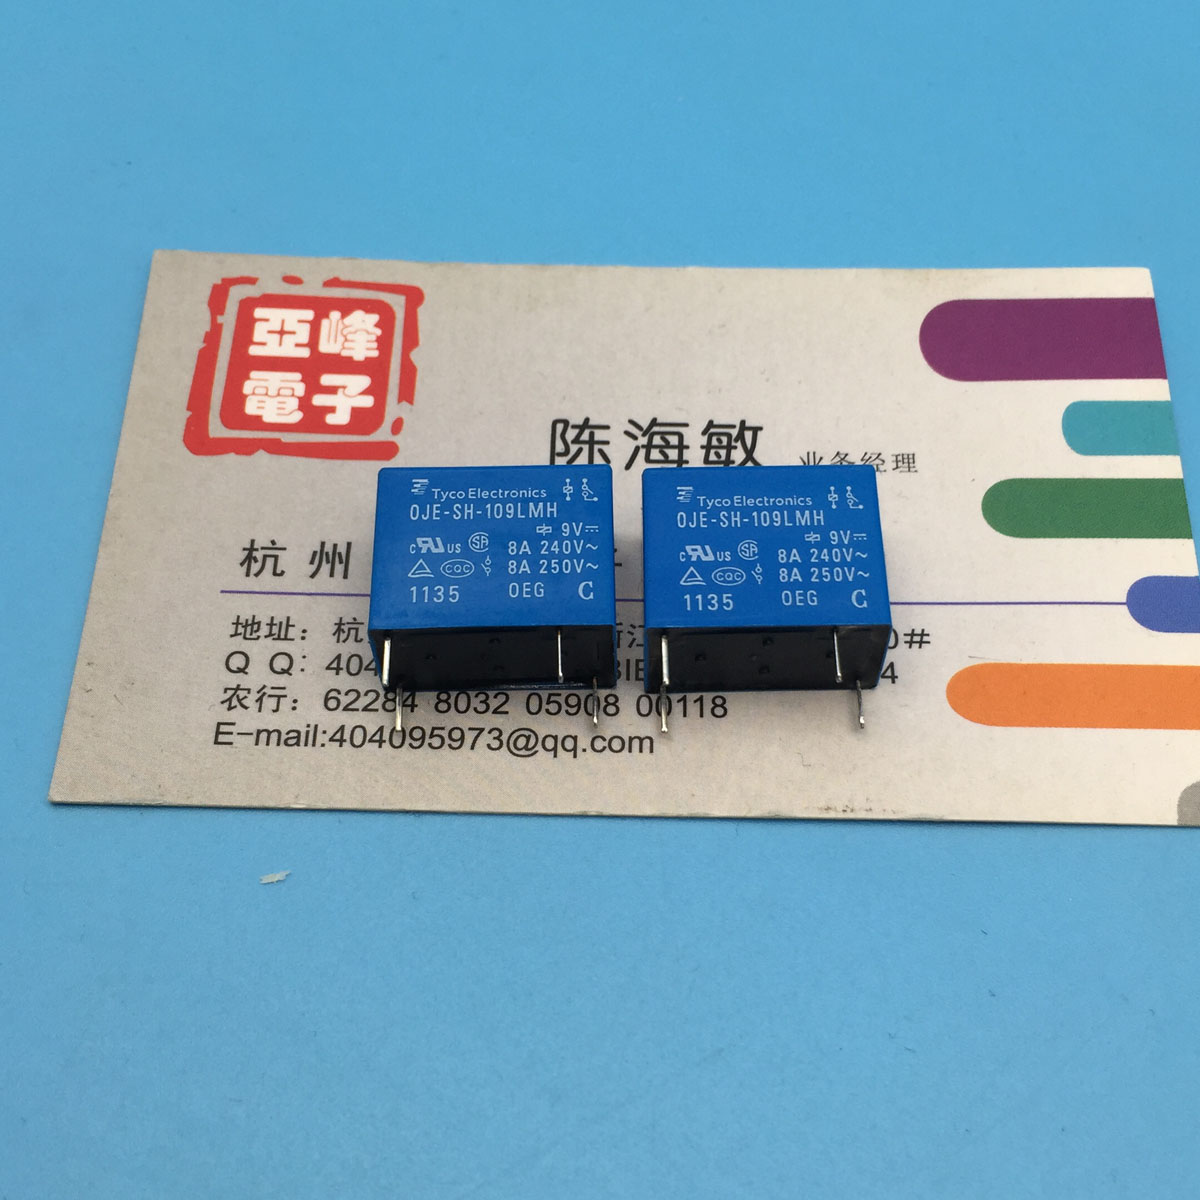 Free Delivery. OJE - SH - 109 LMH new original relay 9 VDC a set of normally open 8 a250vac 4 feet(China (Mainland))